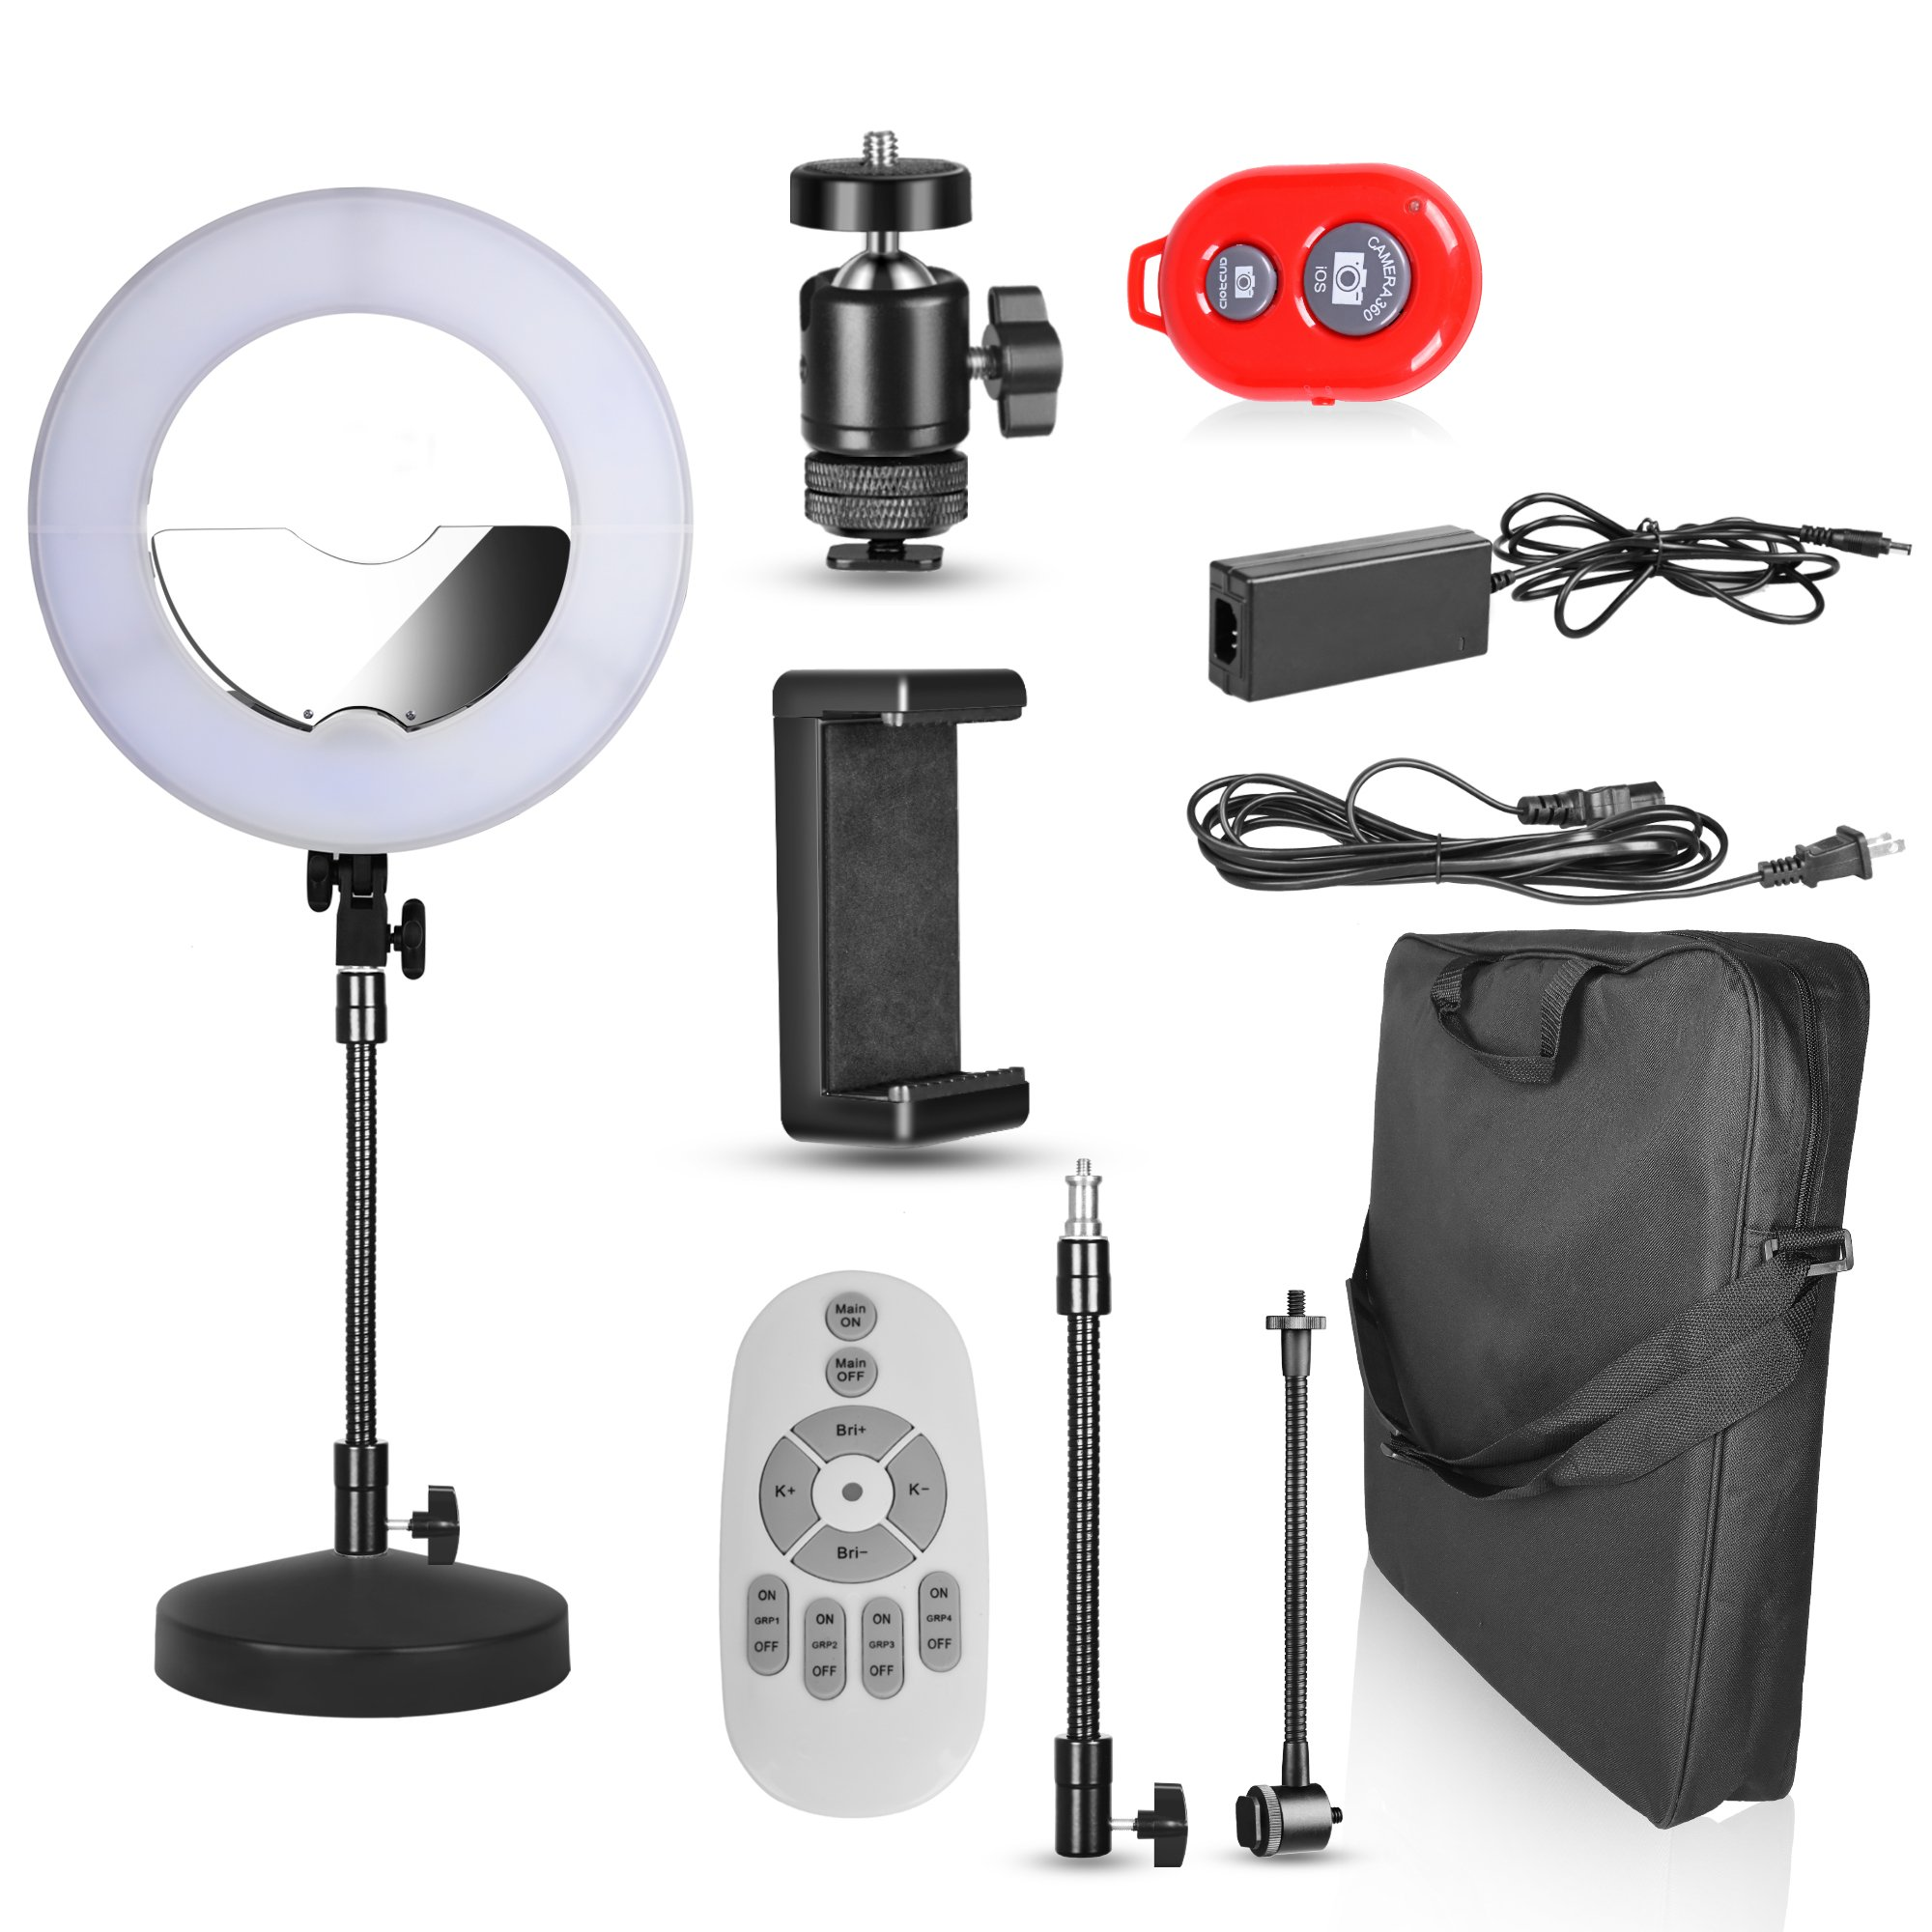 Emart 14 inch Bi-color LED Table Top Ring Light with Stand – Remote Control Revolution, SMD LED Dimmable & Color Temperature Adjustable Circle Makeup Lighting Kit for Photo Video Studio Portrait Shoot